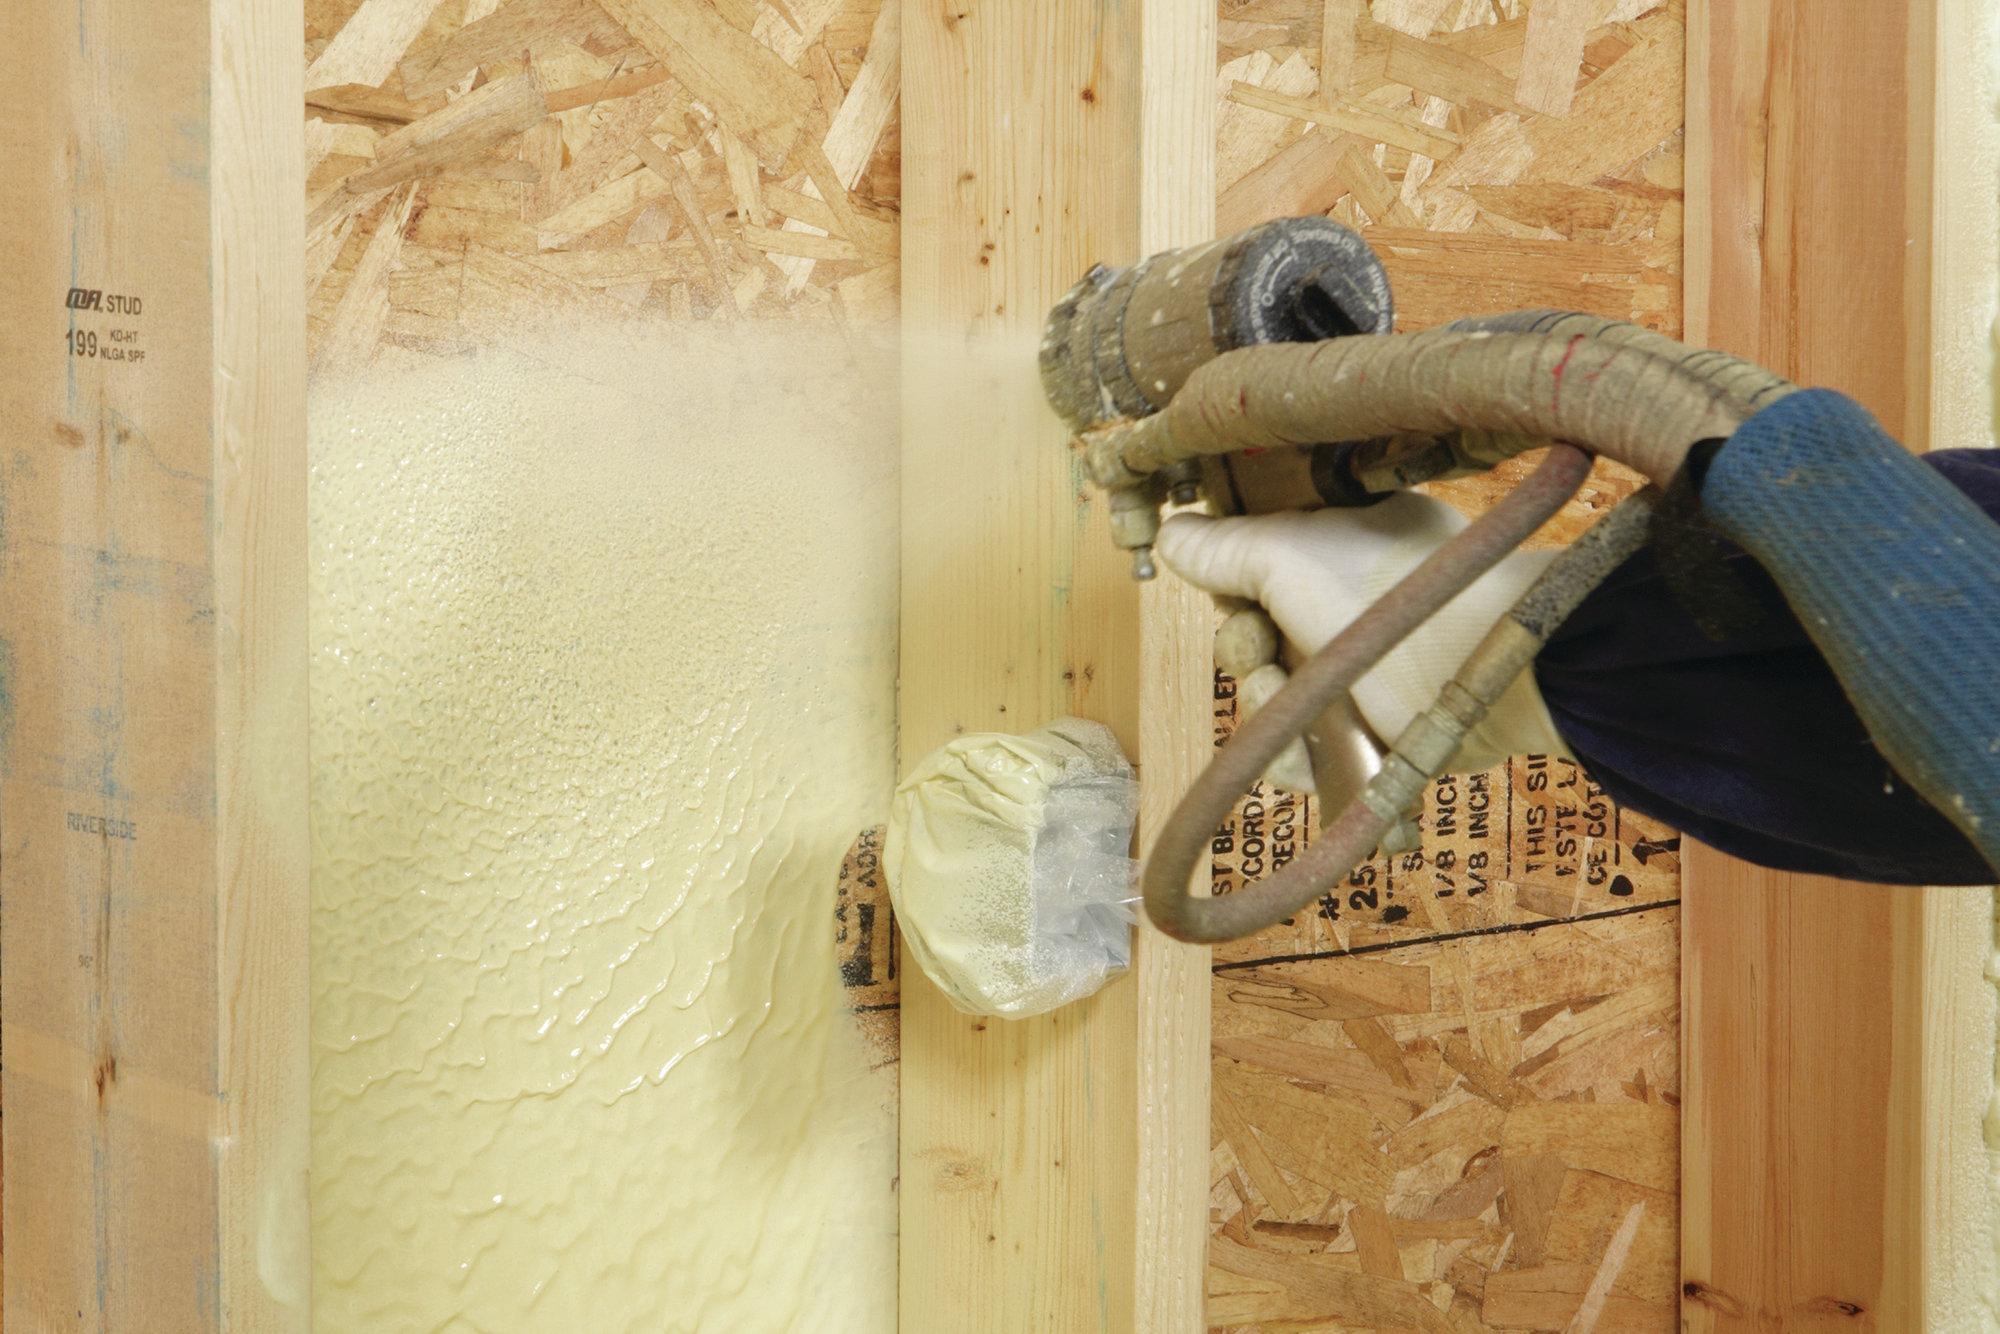 Icynene S Classic Max Spray Foam Insulation Prosales